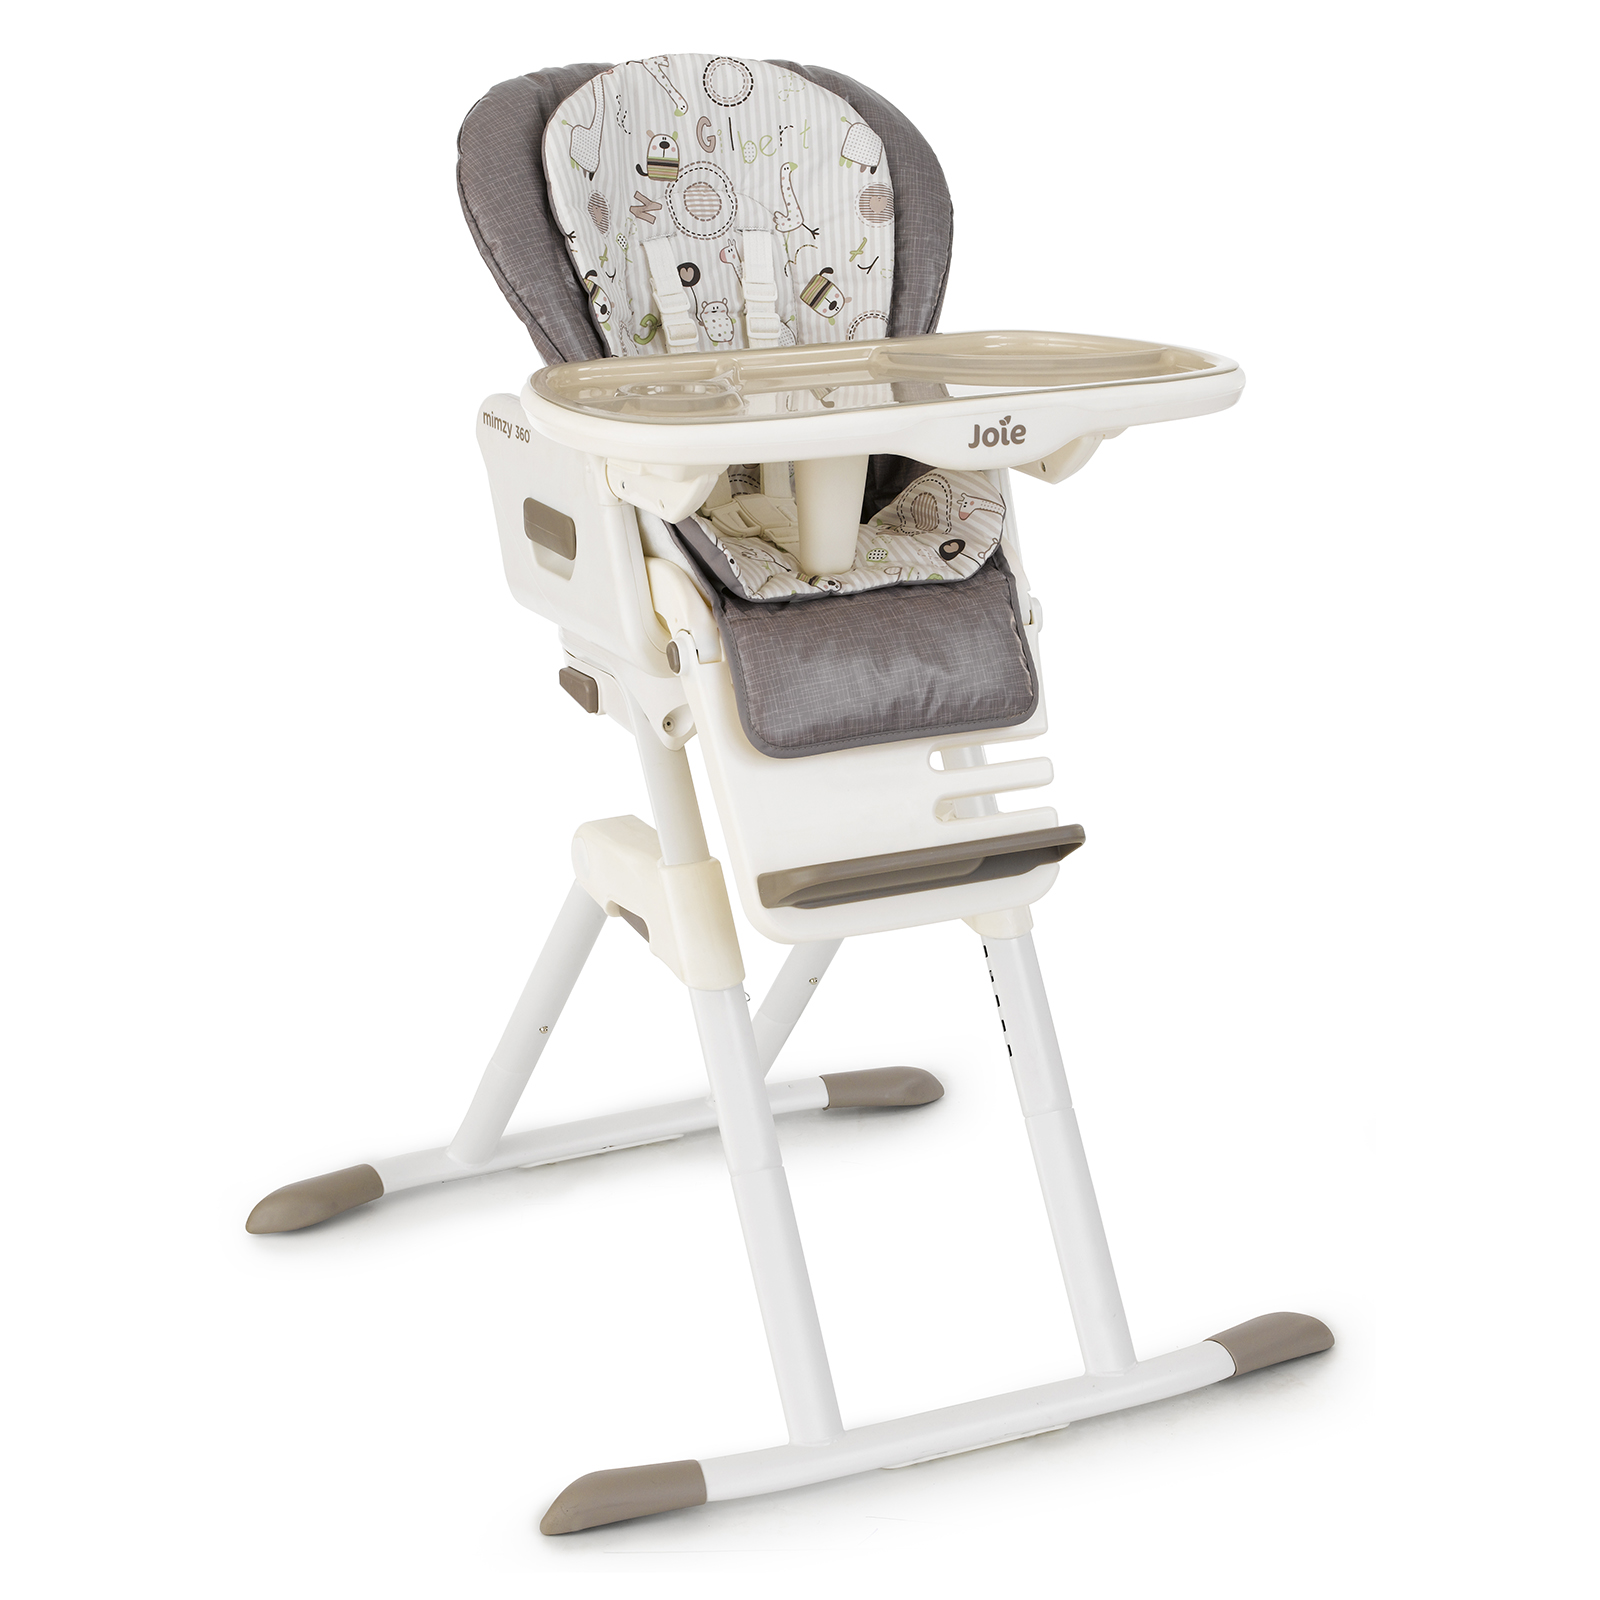 revolving easy chair valkönen hanging joie new ned 360 mimzy highchair rotating reclining height